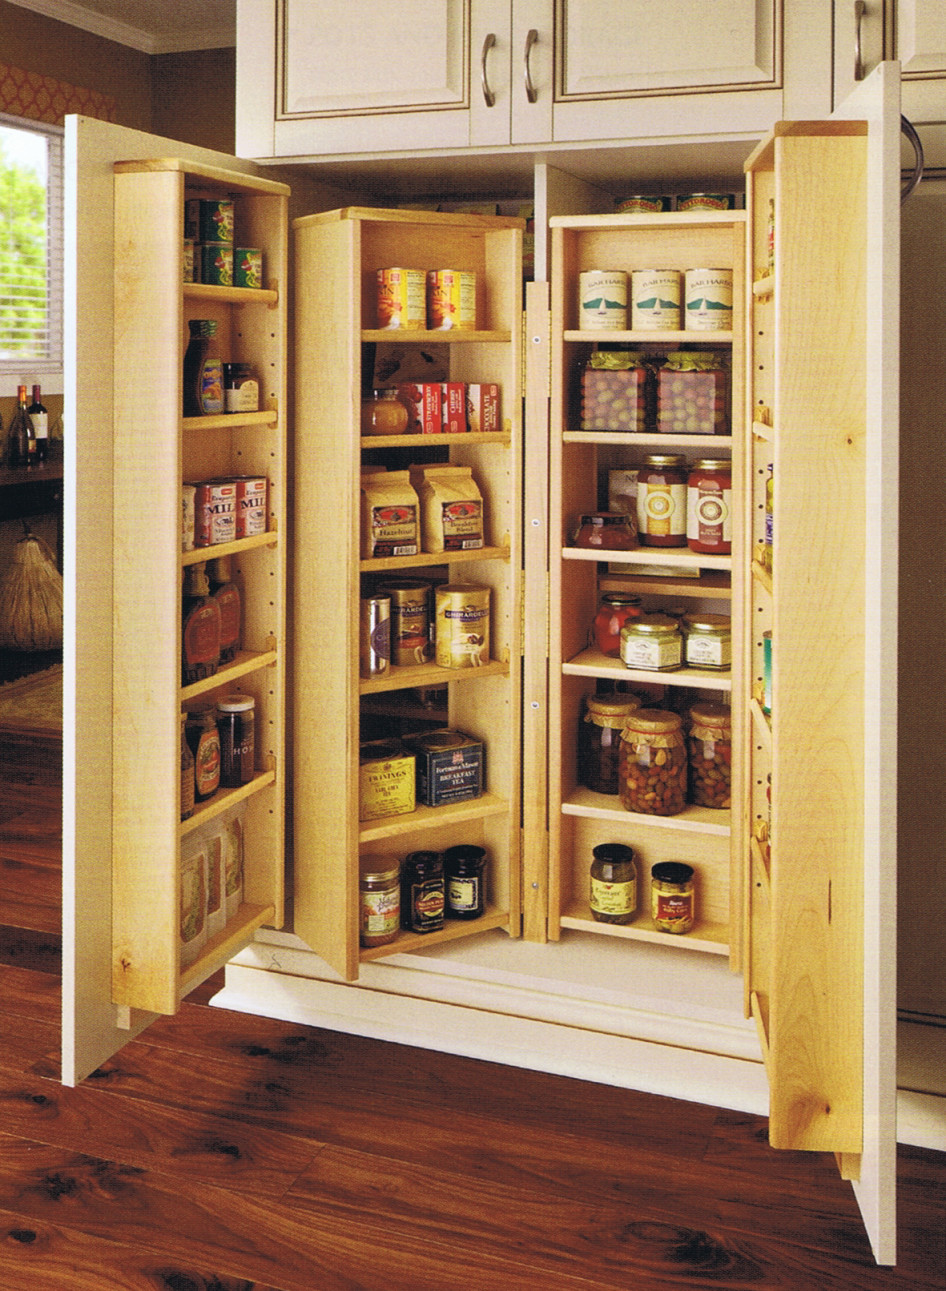 kitchen items such as seasoning kitchenware and other can be placed in the drawer or cabinet kitchen set surely this is a dream for most people especially